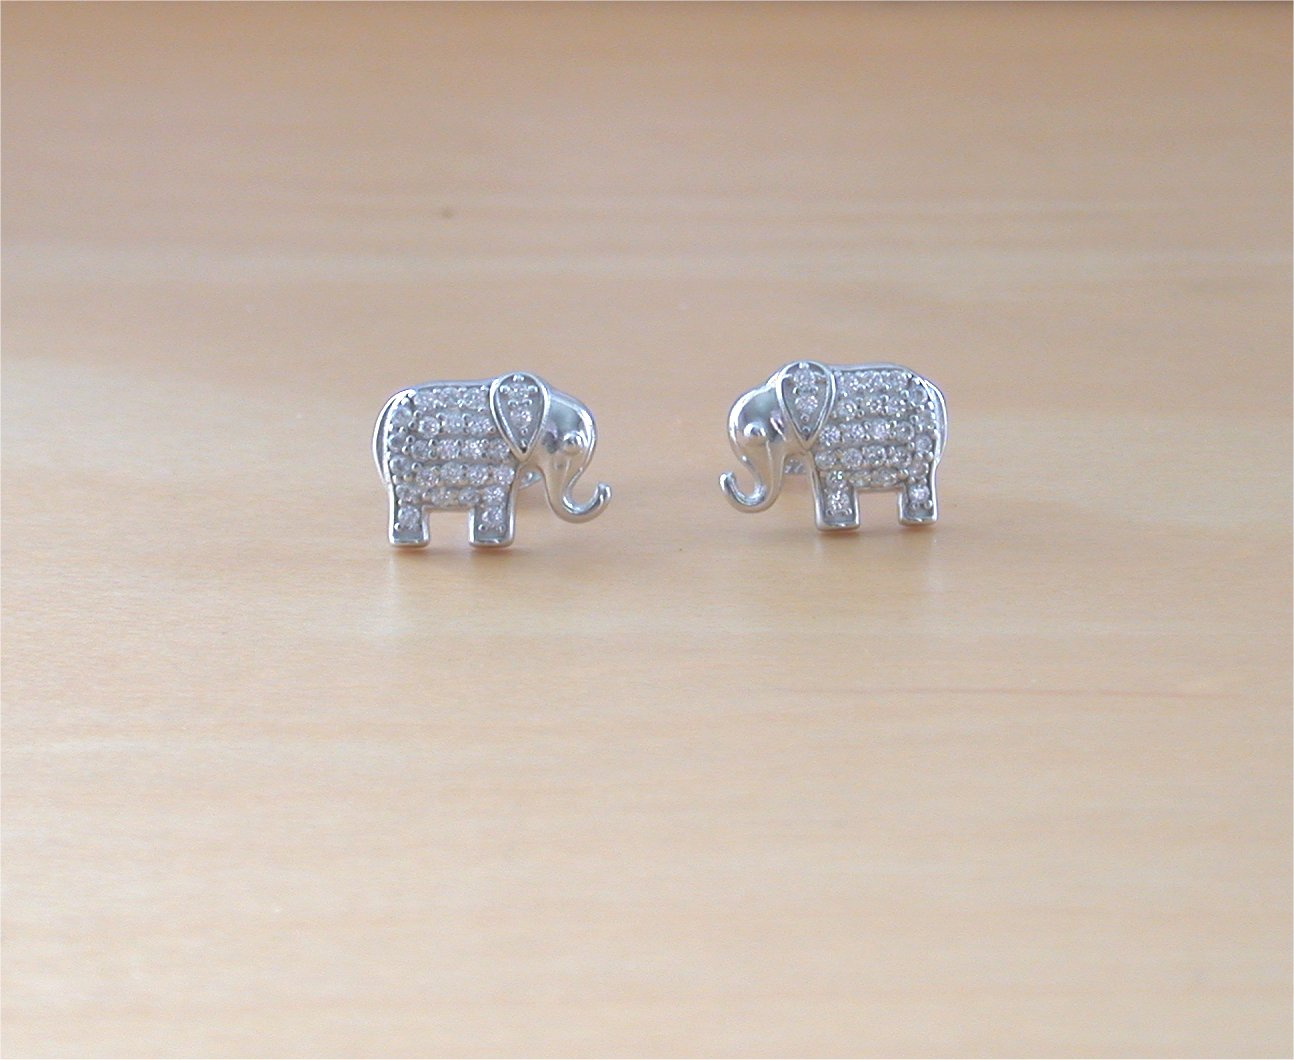 animal jewelry gifts charm cute tail from silver item wedding elephant earrings women long party sterling friendship earring kids stud in